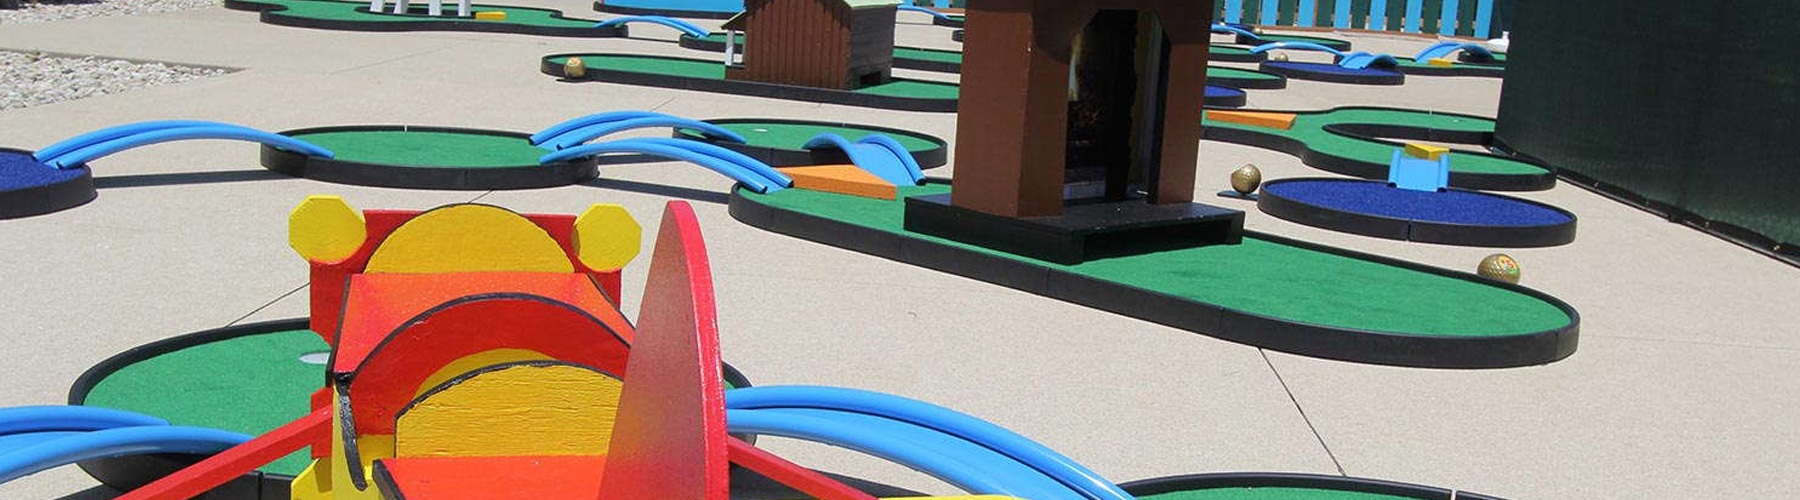 Lake Geneva Mini Golf